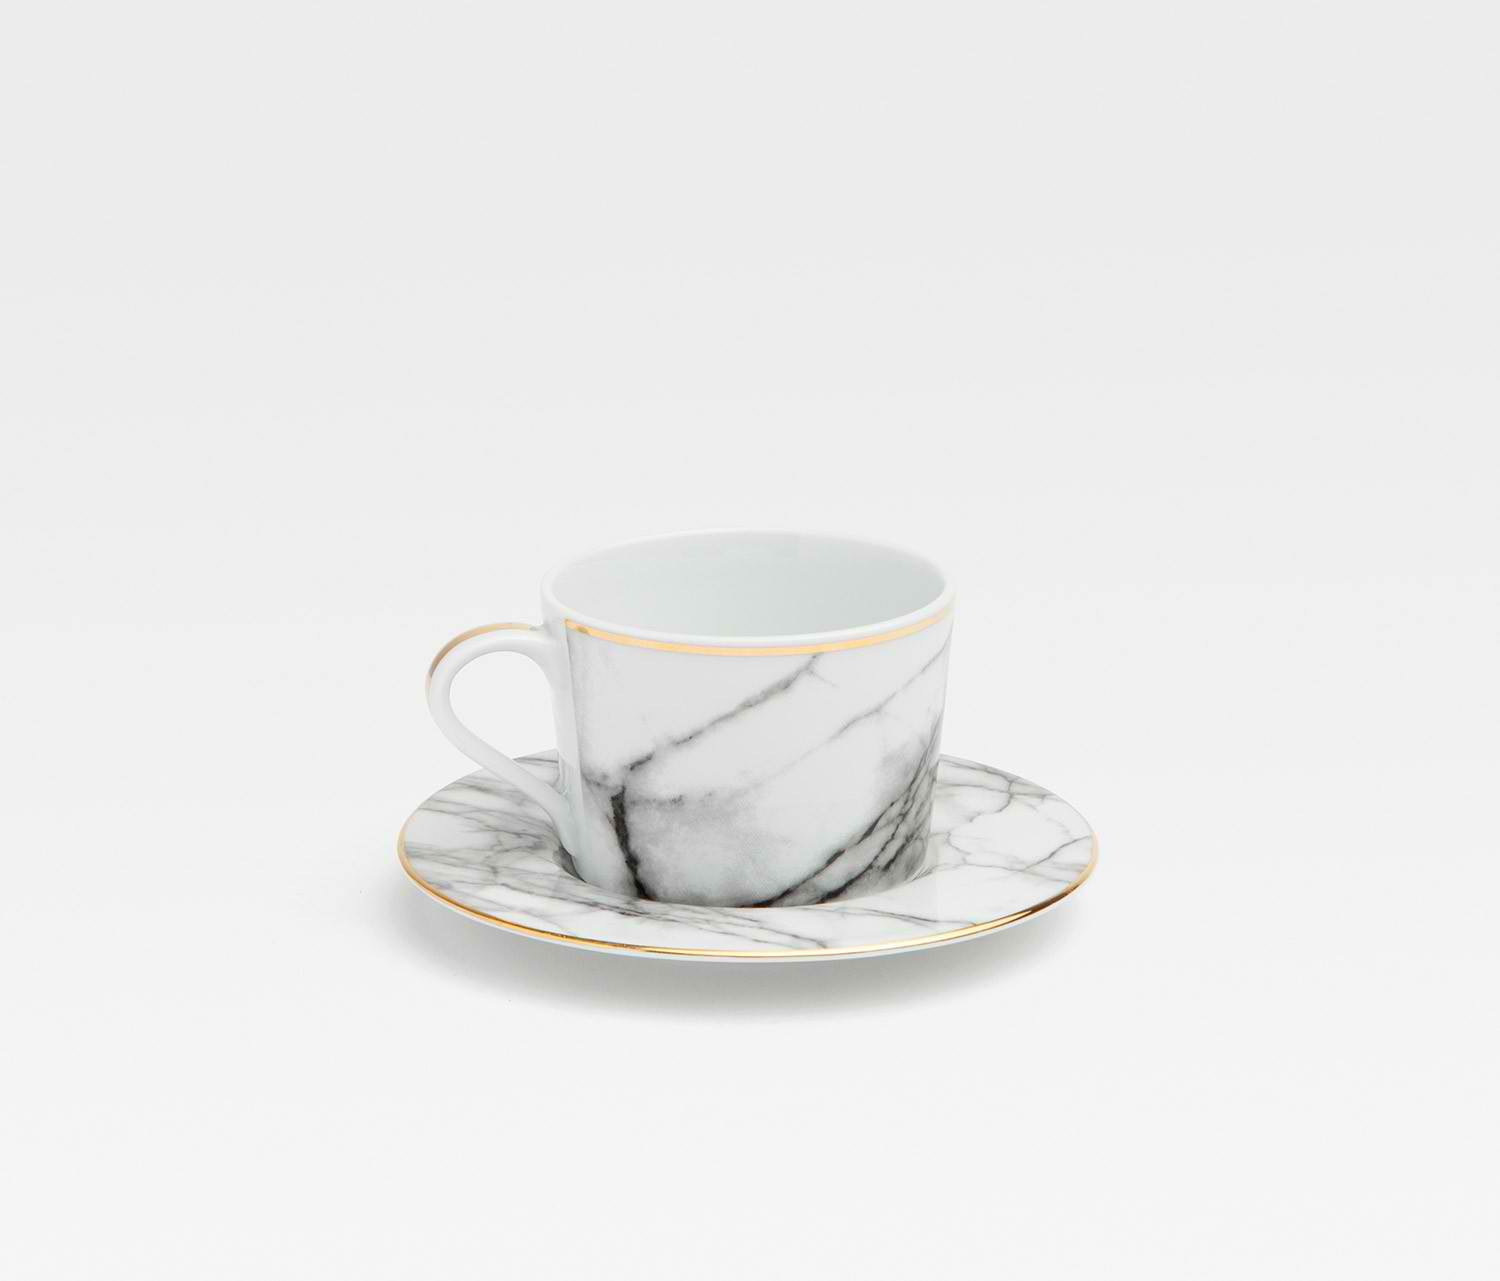 A Marble In A Cup Of Honey : Blue pheasant eleni white marble dinner plate gracious style